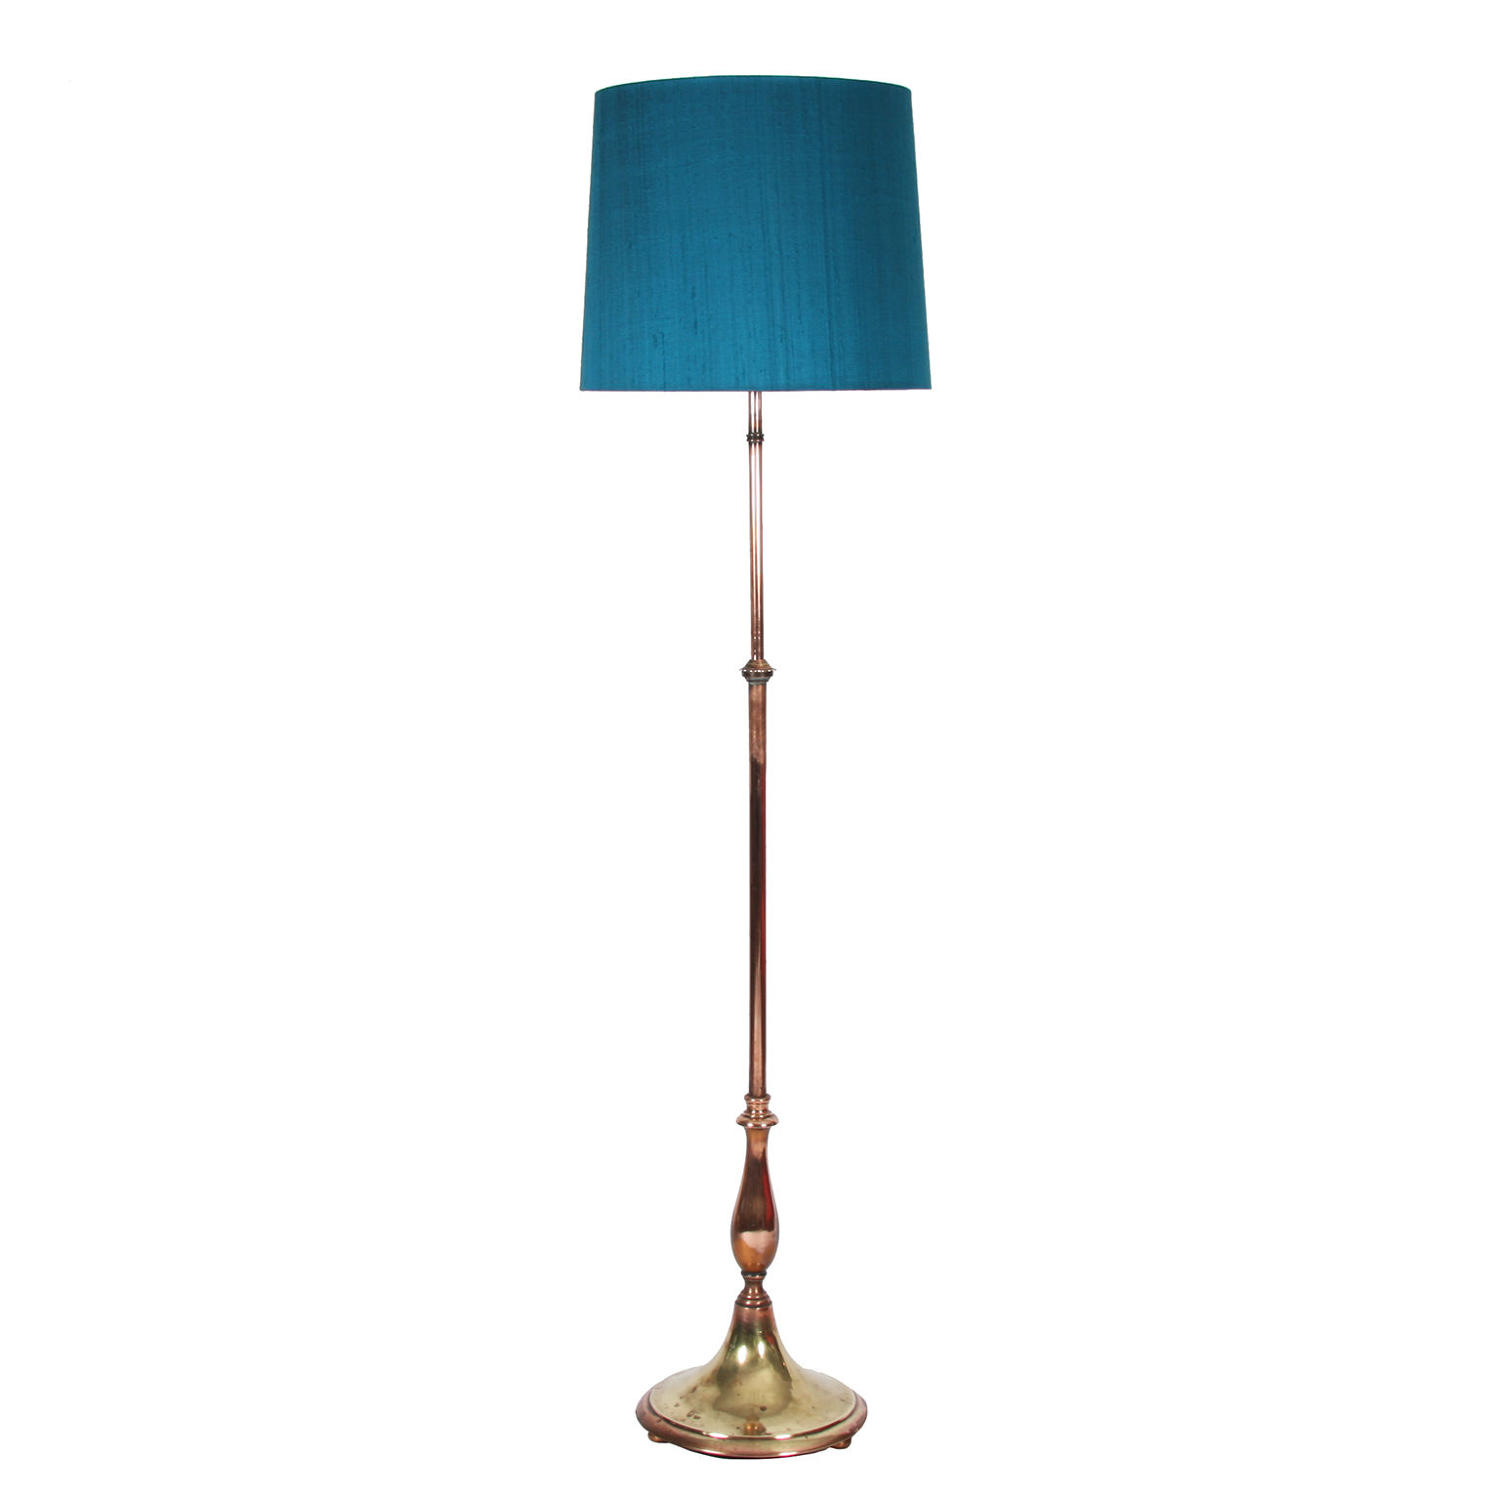 Copper & Brass Floor Lamp